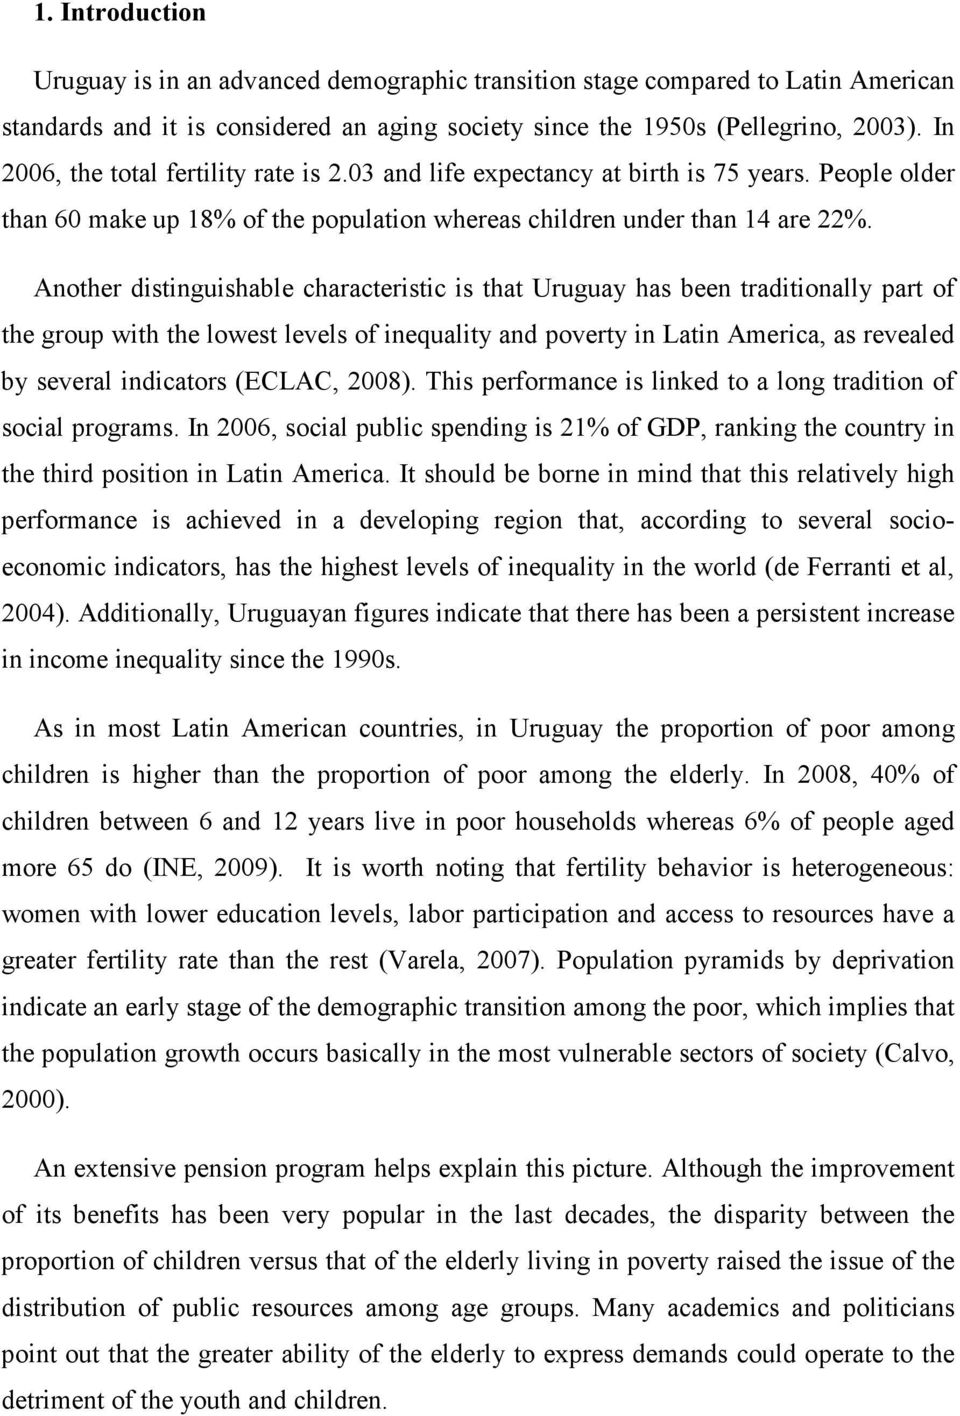 Another distinguishable characteristic is that Uruguay has been traditionally part of the group with the lowest levels of inequality and poverty in Latin America, as revealed by several indicators